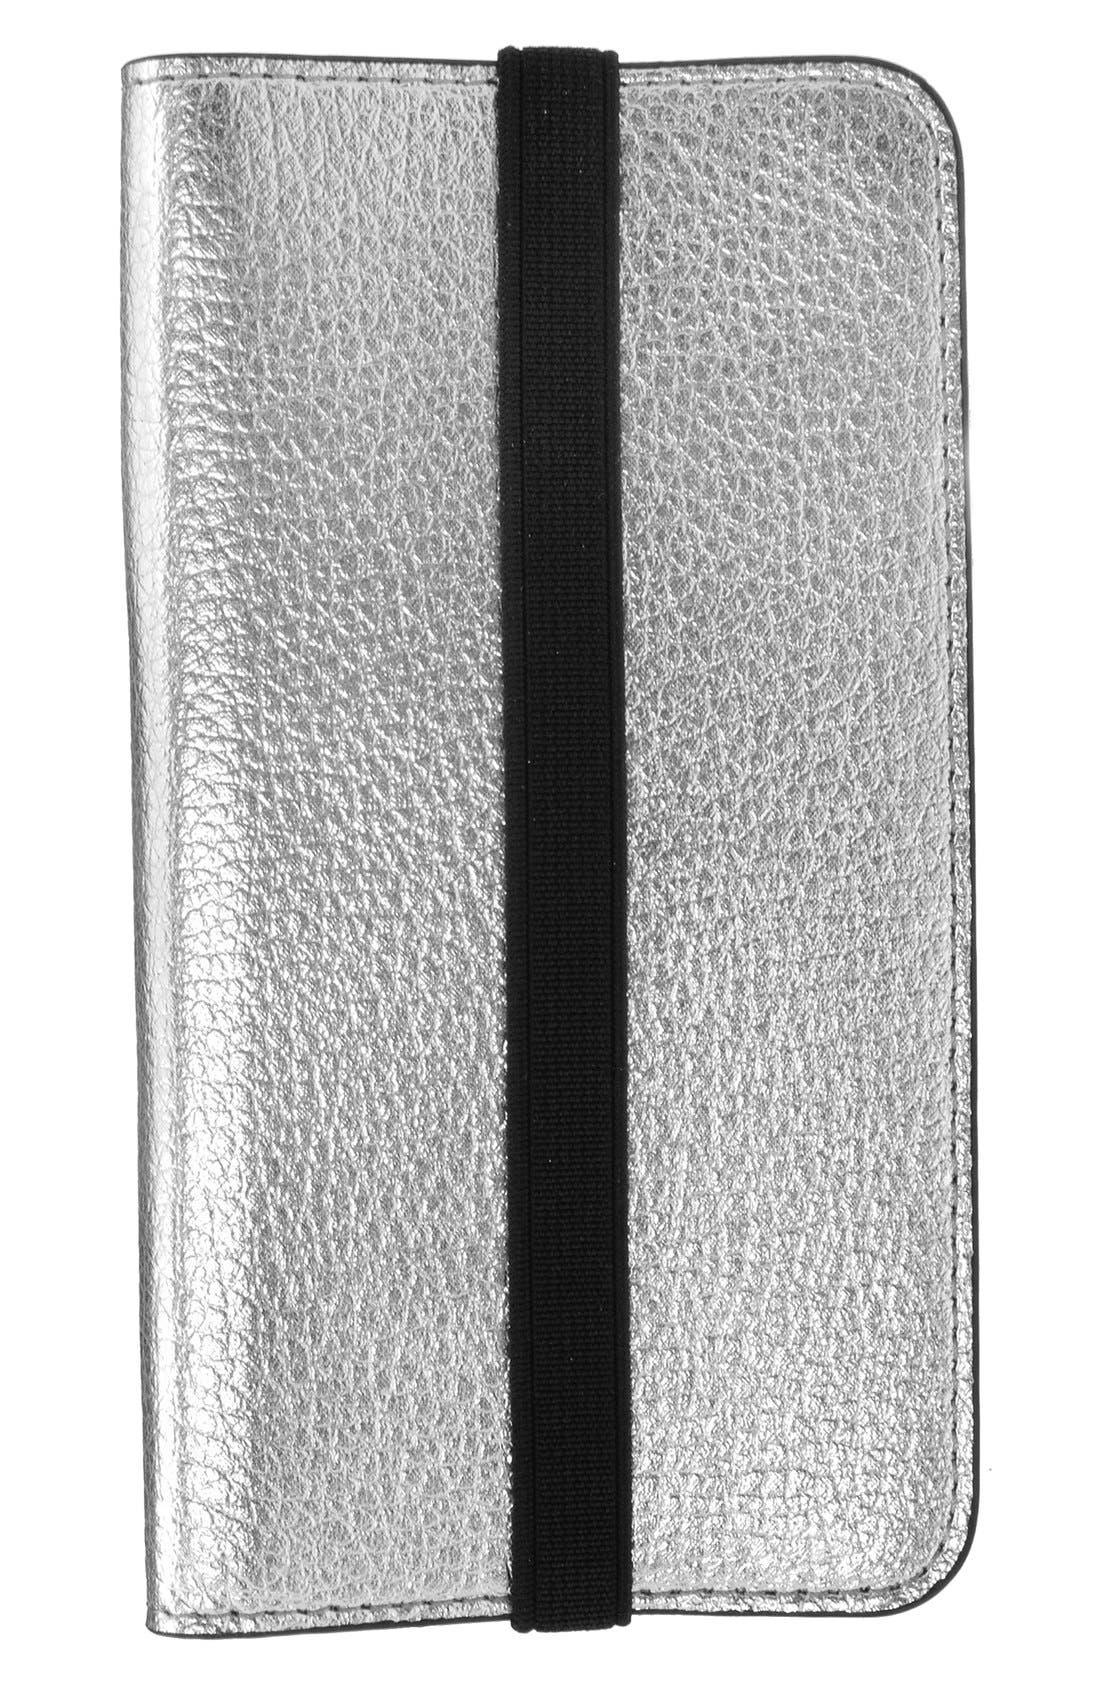 Alternate Image 1 Selected - Mobileluxe iPhone 6/6s Metallic Leather Wallet Case